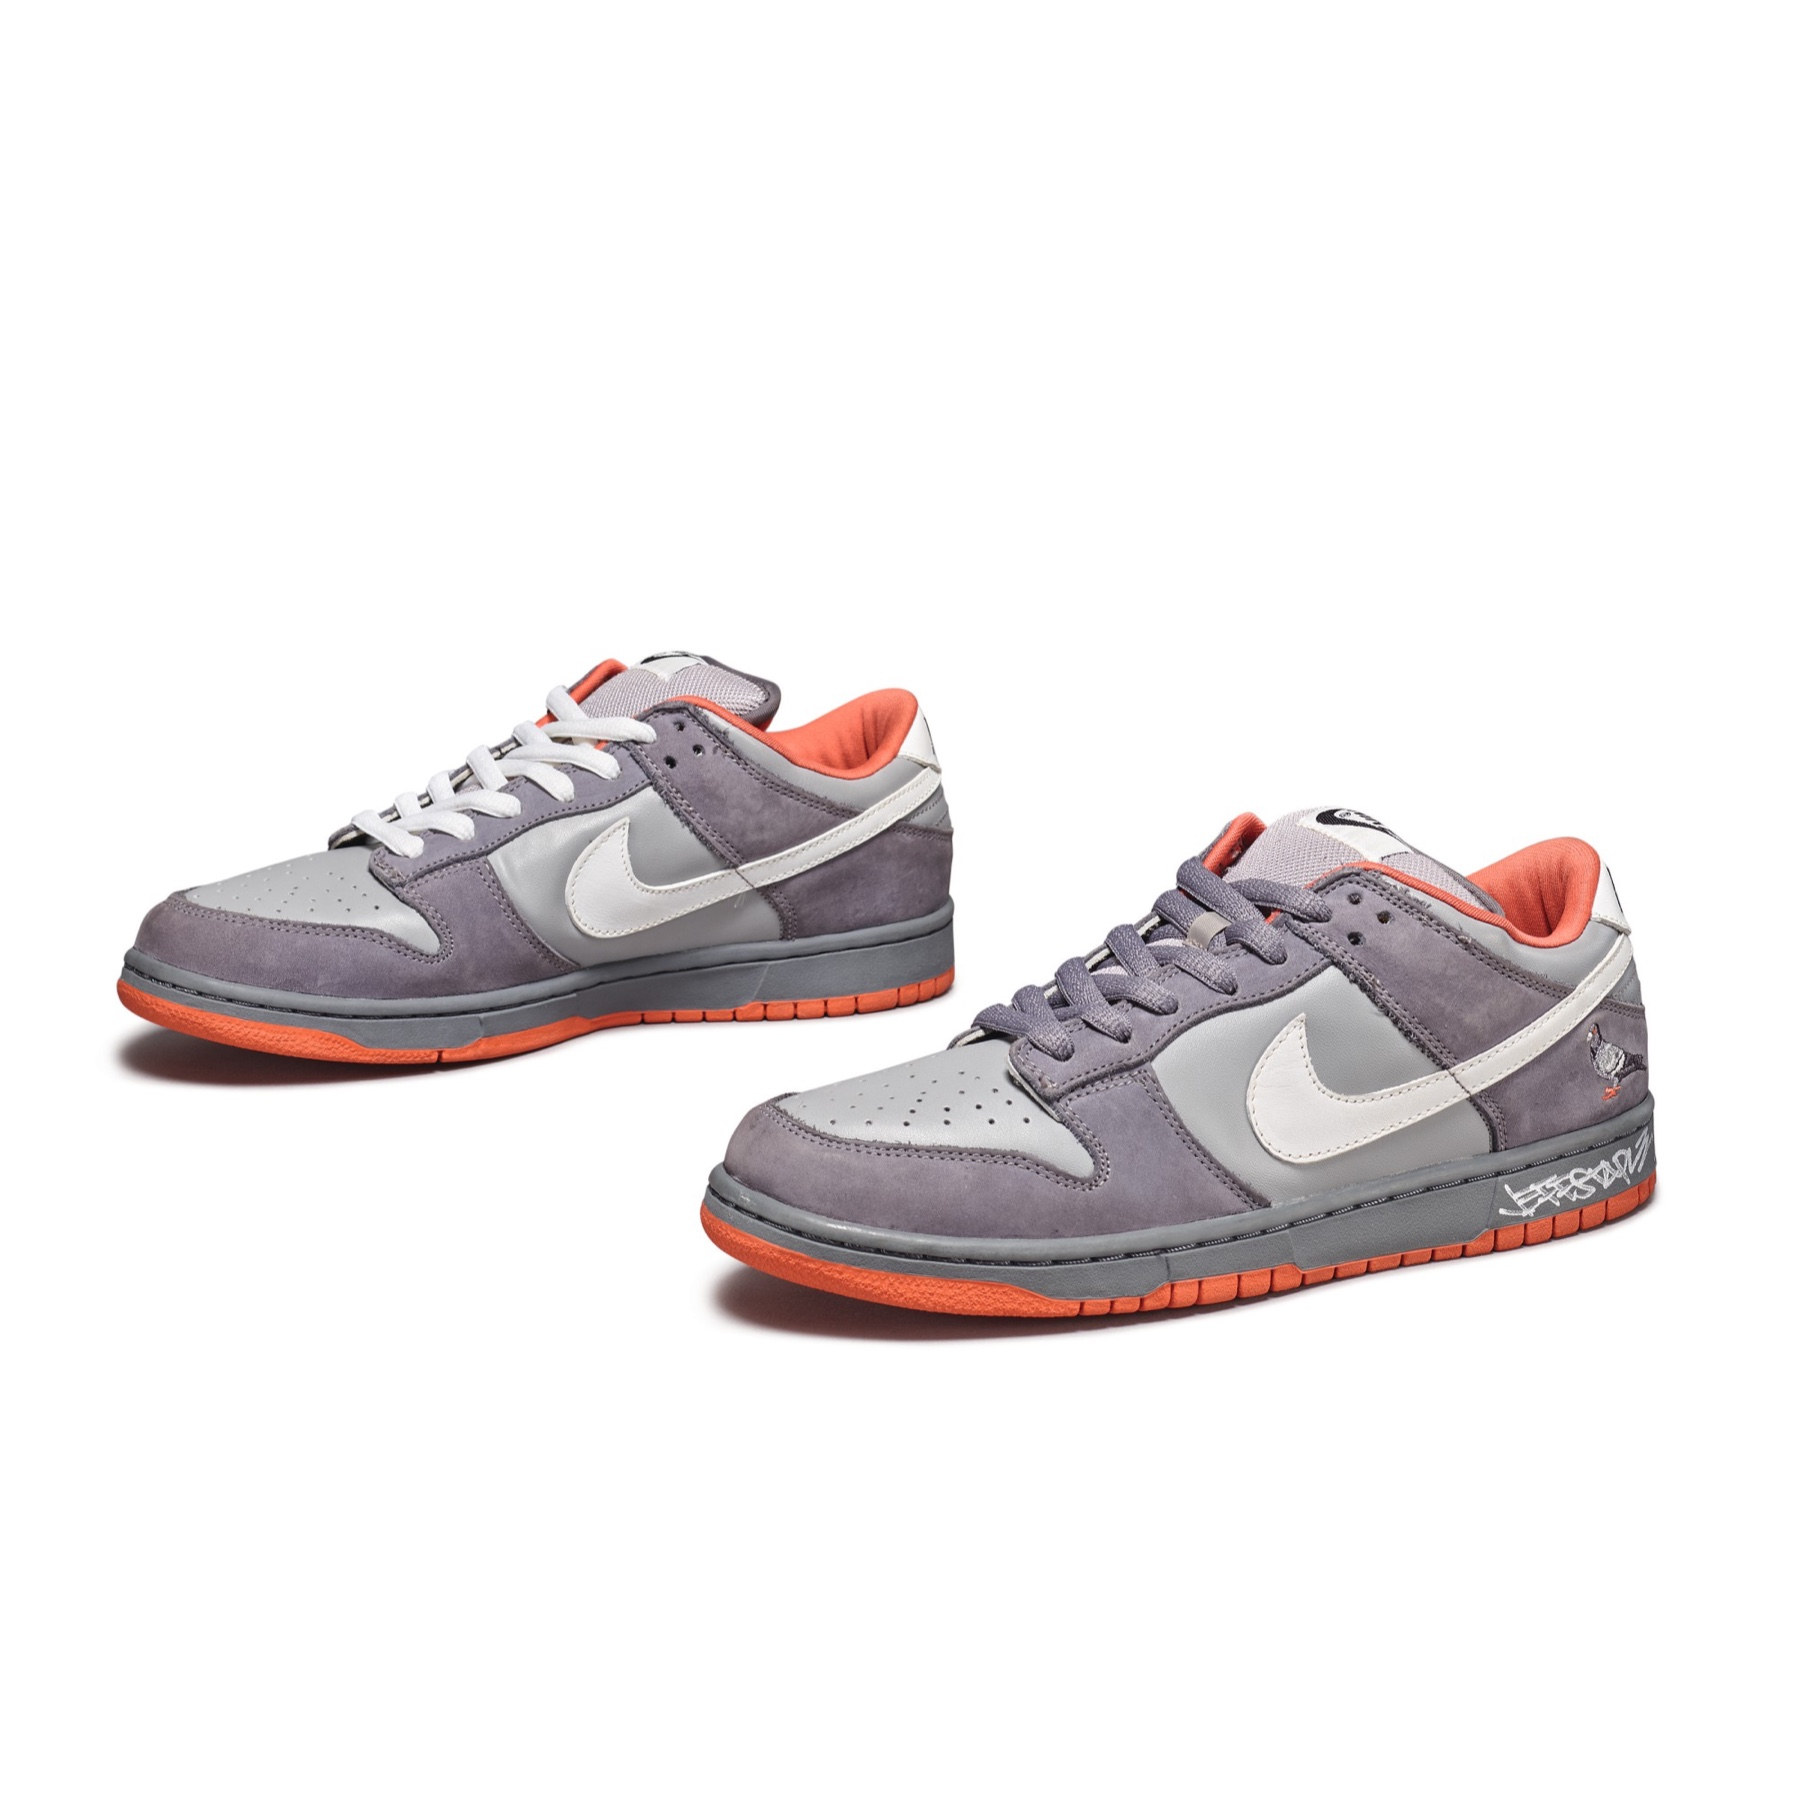 Jeff Staple x Nike SB Dunk Low NYC Pigeon (Paio Autografato)